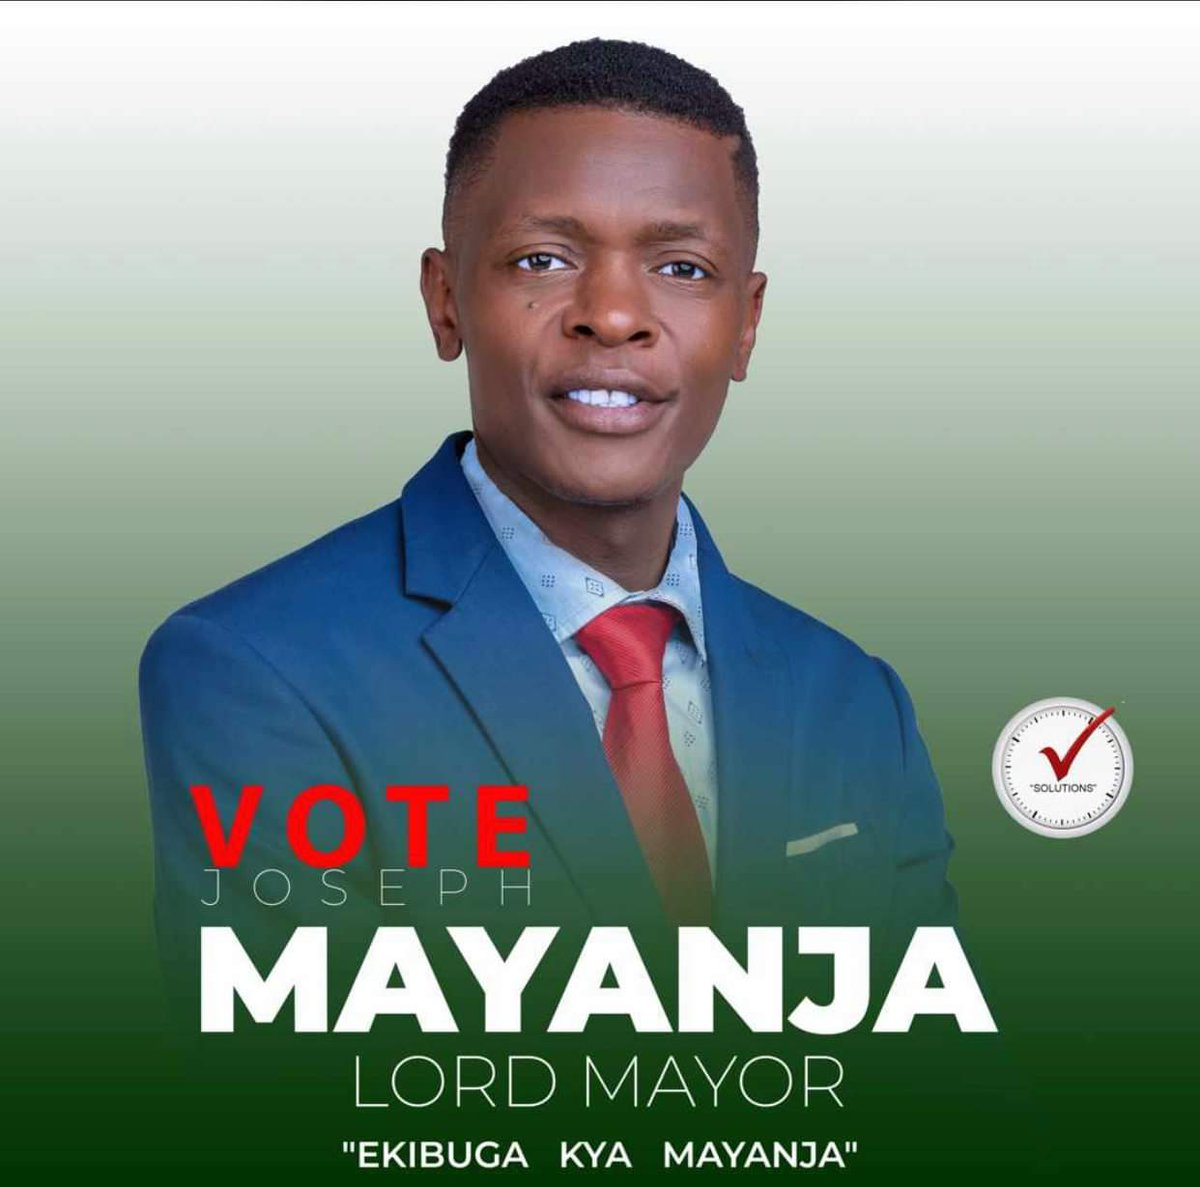 The only candidate with Credibility to this amazing kamapala is @JChameleone #mr.solutions  come this Wednesday #Lordmayor #vote✔  @McPallaso @RadioandWeasel  lets do this guys🤝🏿🕧